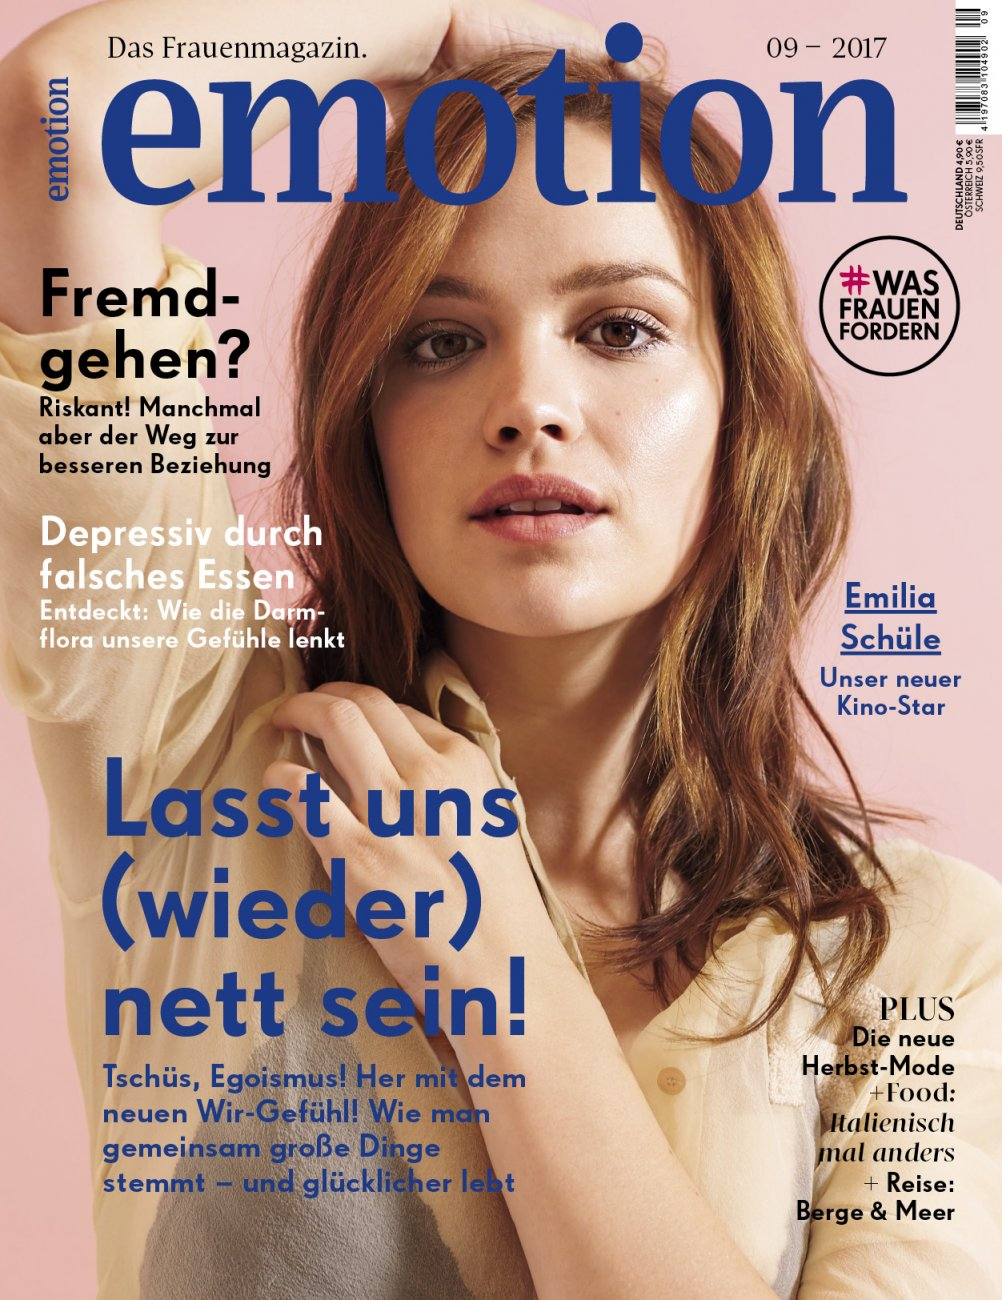 Emotion / Septembre 2017 / Emotion Das Frauenmagazin